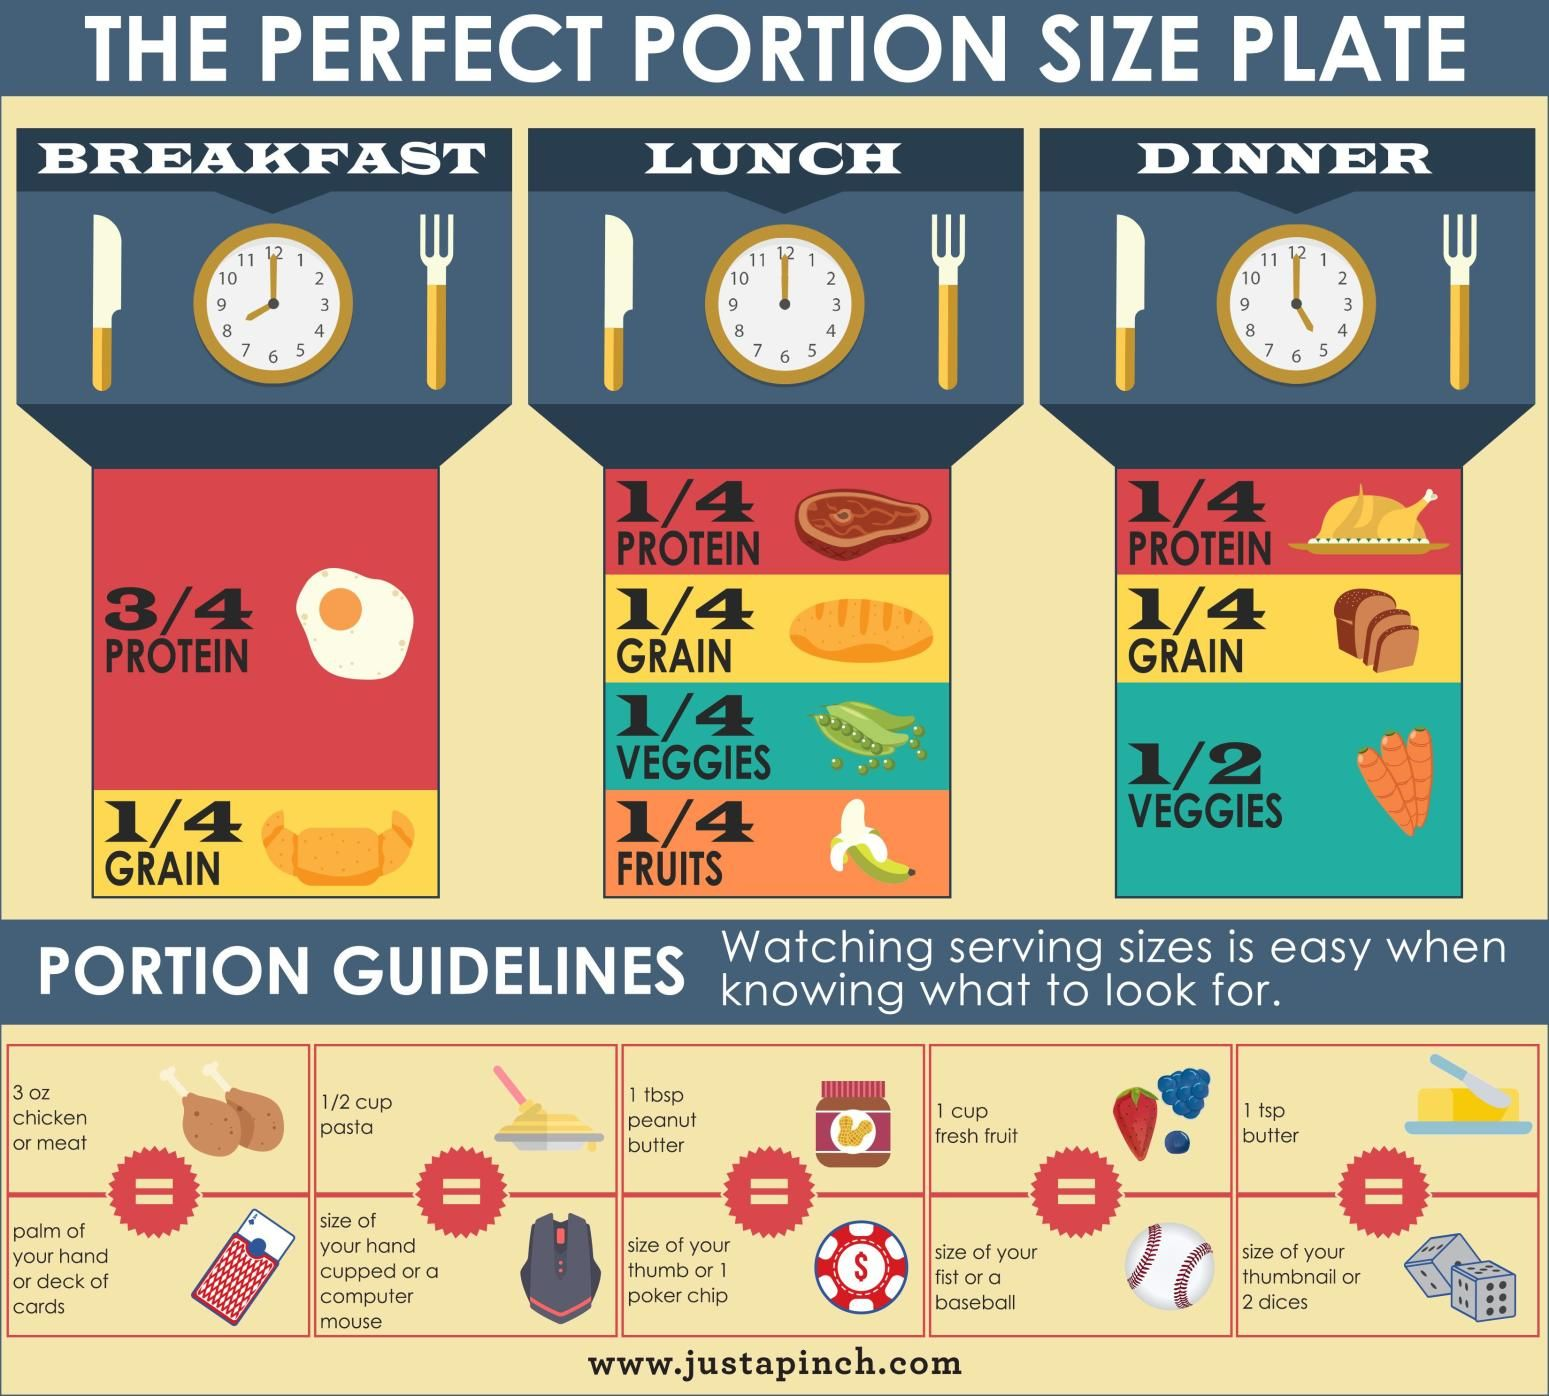 the perfect portion size plate chart justapinch foodbites sizes for foodies who watch their weight also control food portions and serving mindful rh pinterest